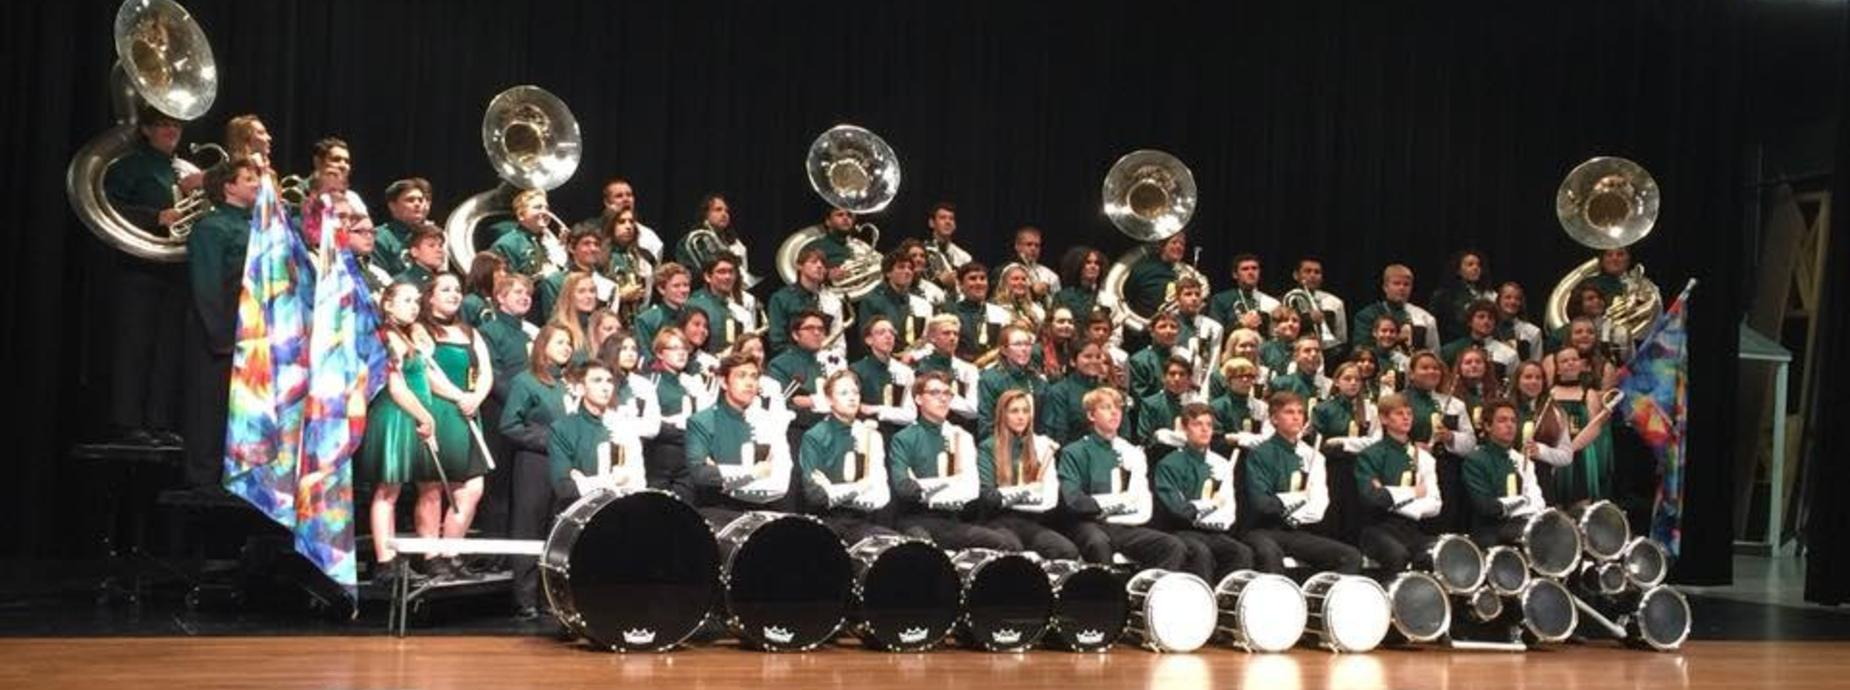 CLHS Band